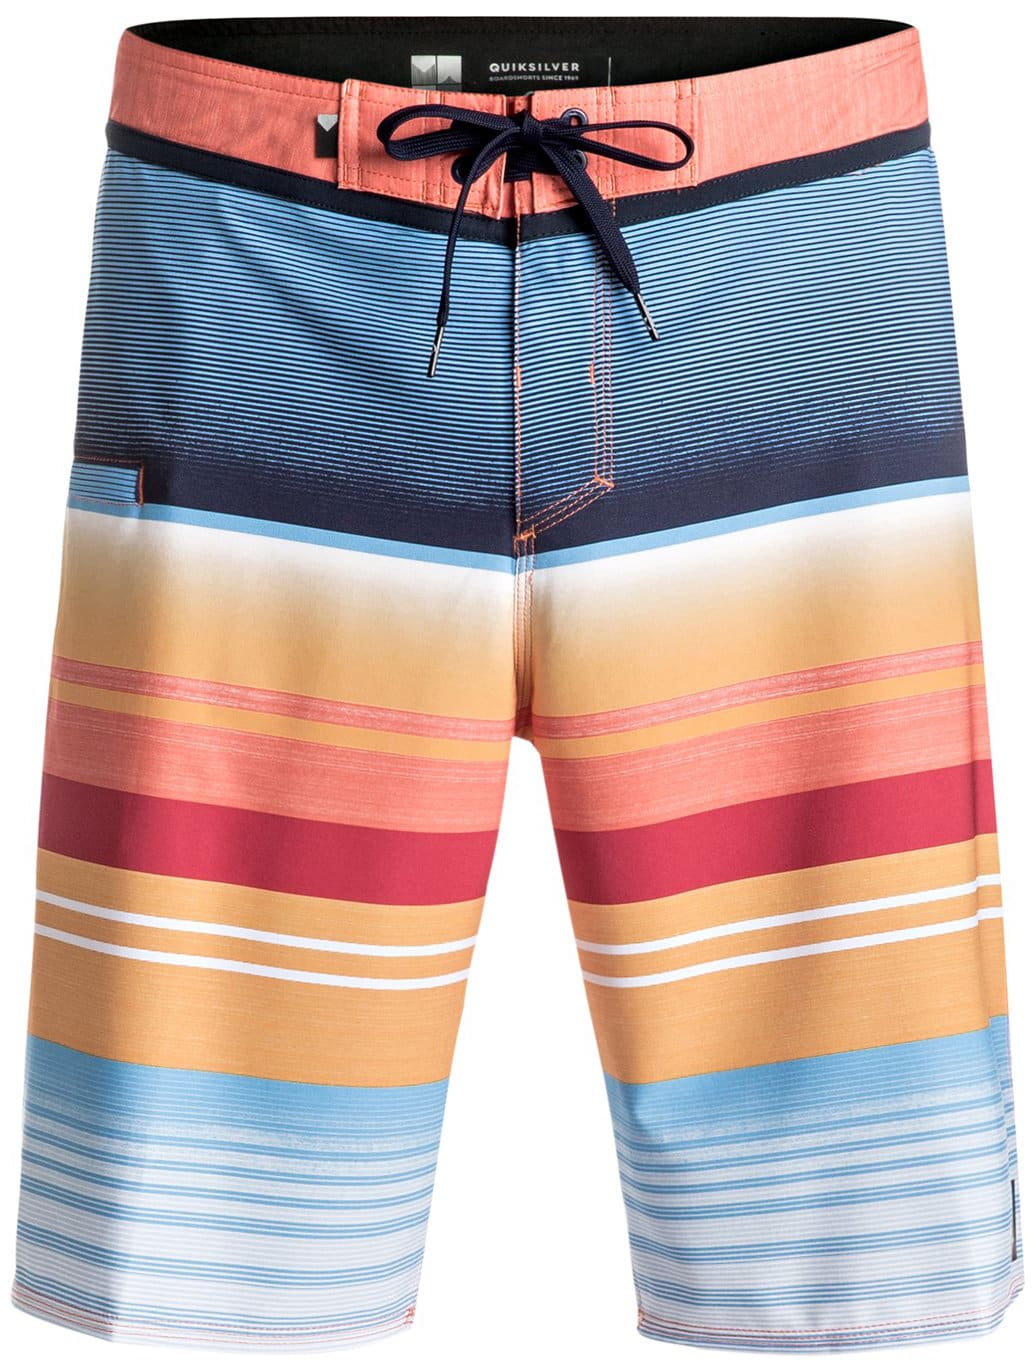 Quiksilver Board Shorts. Get endearing Quiksilver Board shorts at Stylight. They are available in vibrant colors and soothing fabric to give you optimum comfort. Quiksilver Board shorts are preferred for their soothing feel that gives respite during hot weather.